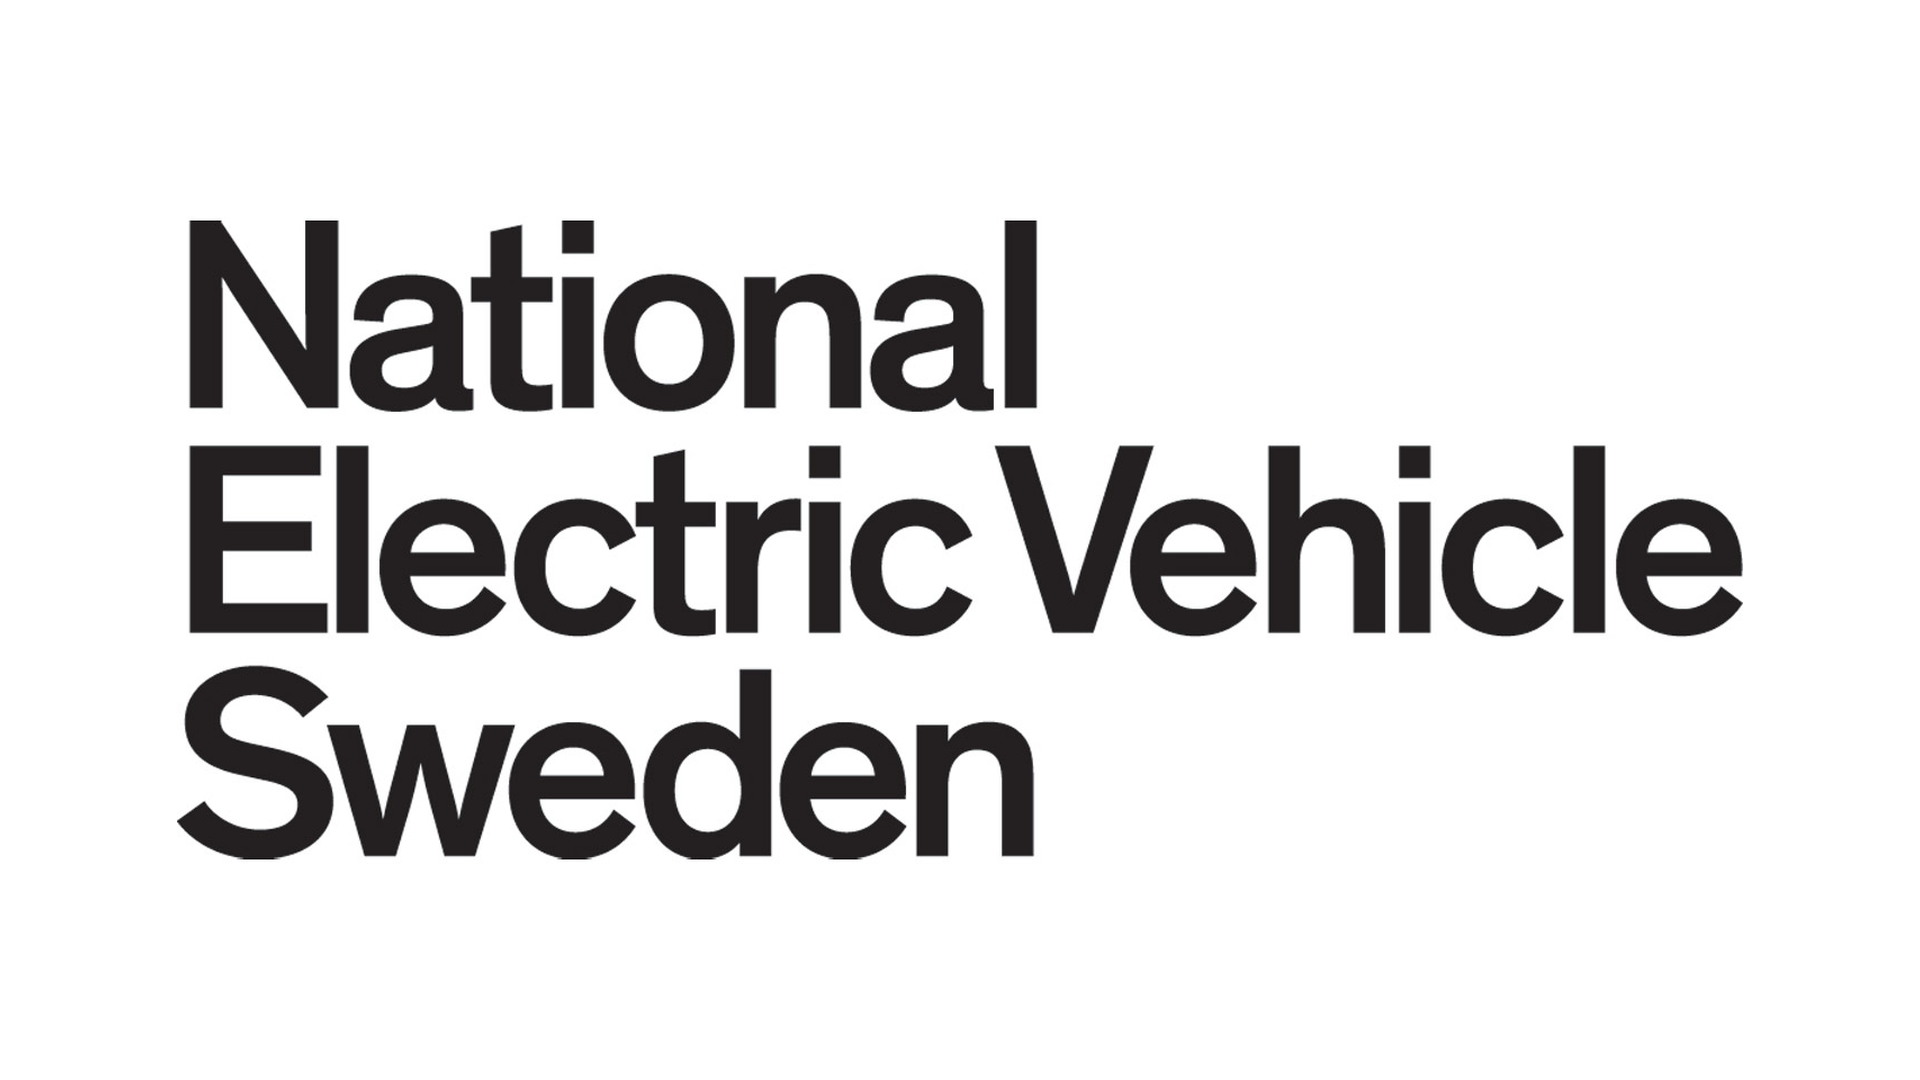 Saab parent company National Electric Vehicle Sweden (NEVS)